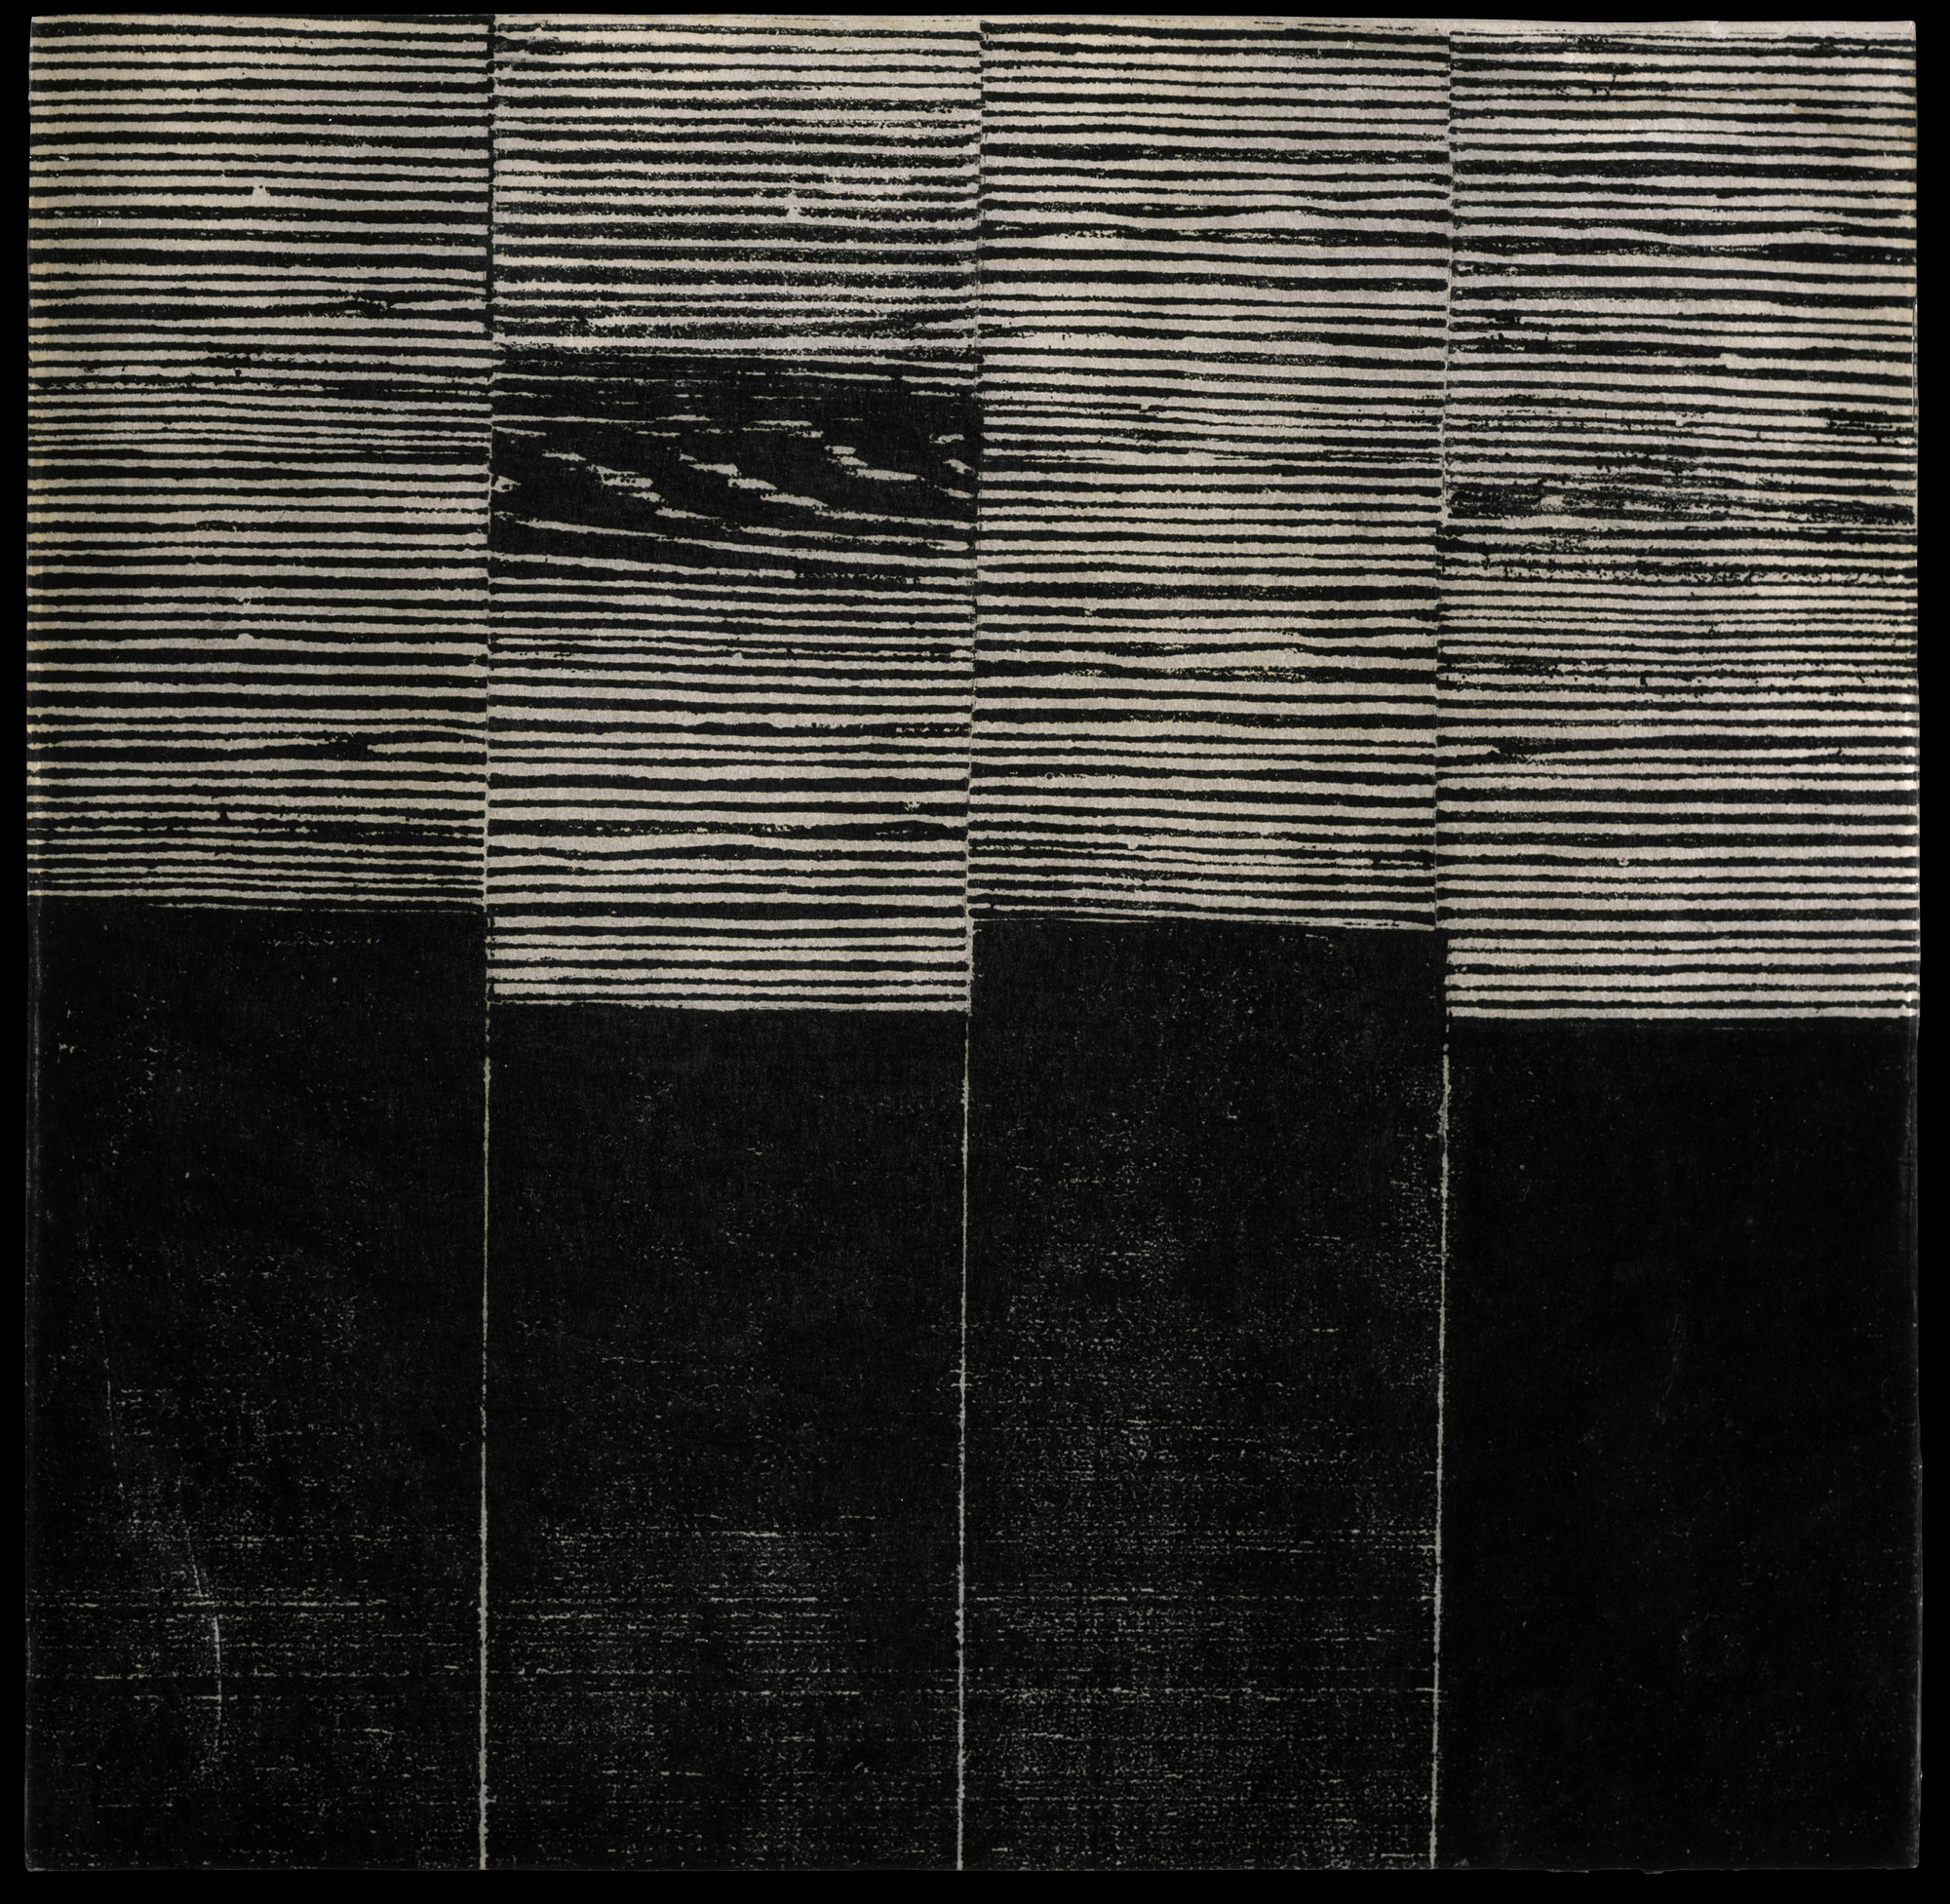 Lygia Pape. Untitled from the series Weavings (Tecelares). 1959